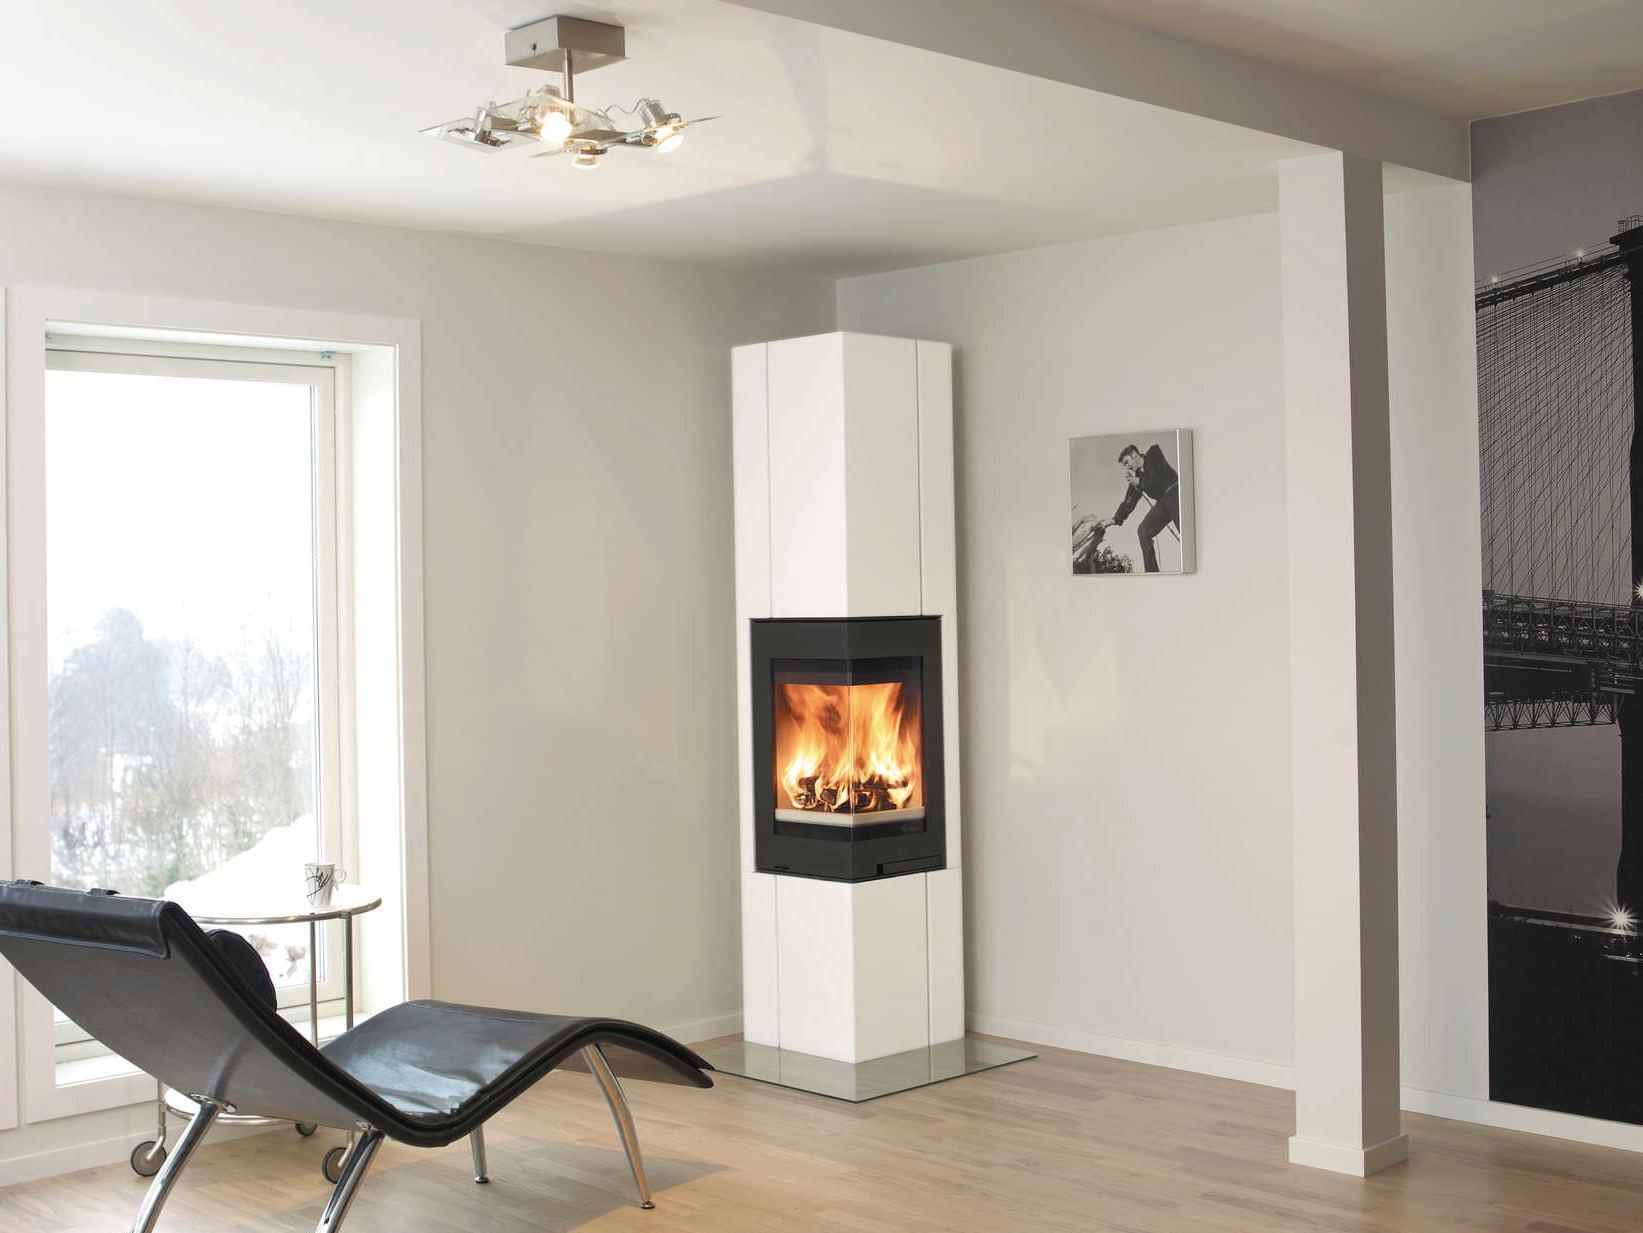 fireplaces wall heater walls decor modern white home fire and gas electric with stand corner mounted fires fireplace design idea contemporary